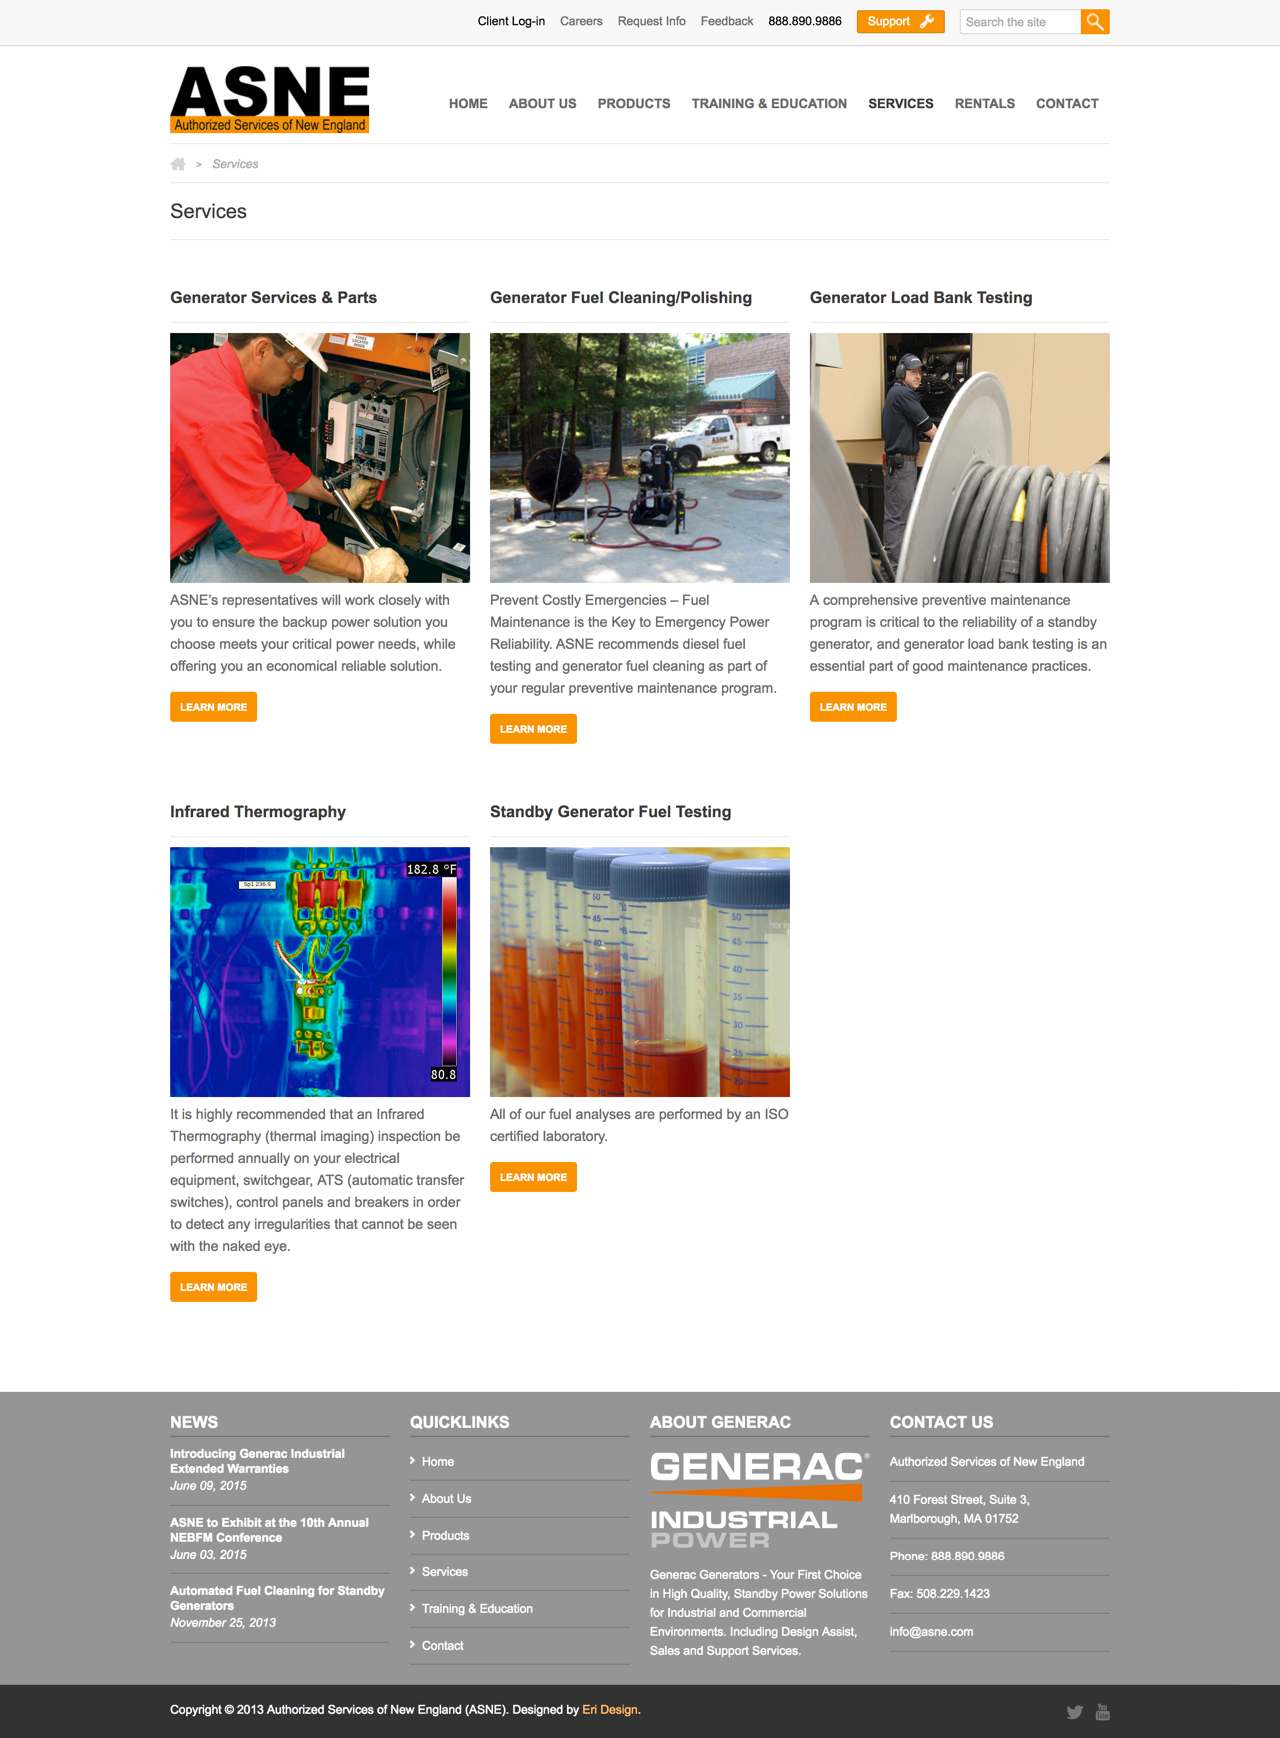 ASNE Full Services Page